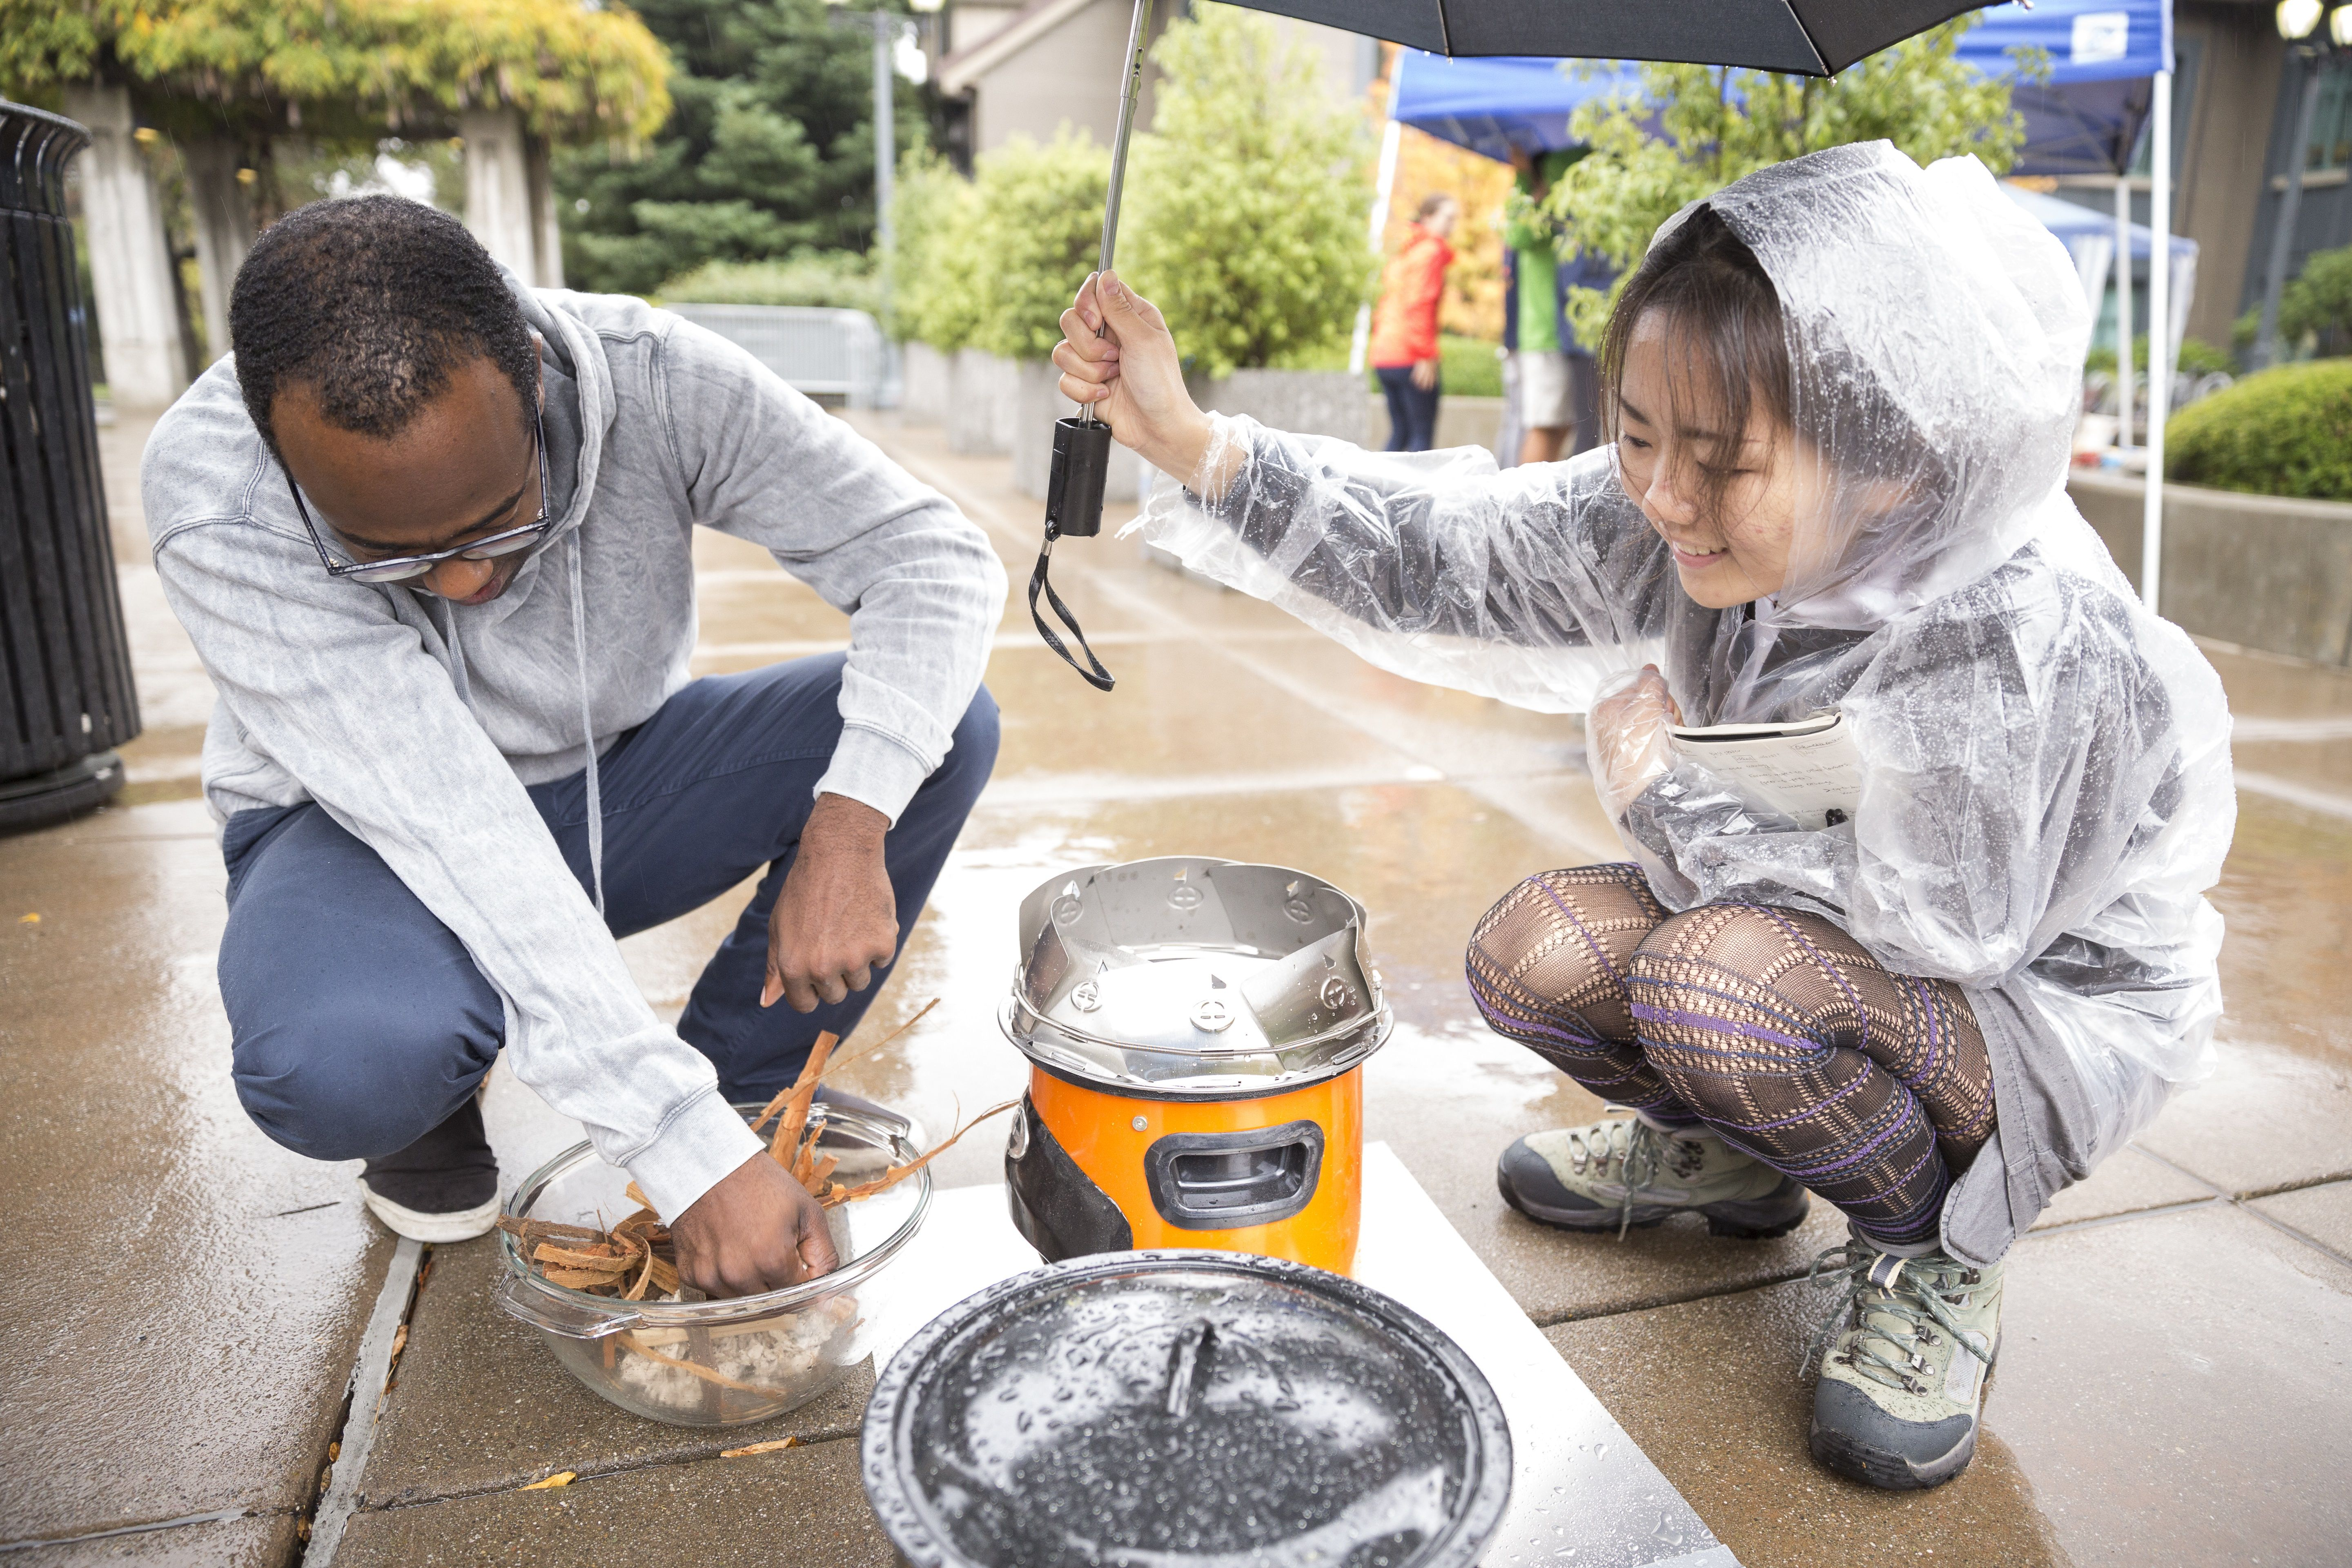 Two students work on a prototype of the Darfur stove in the rain